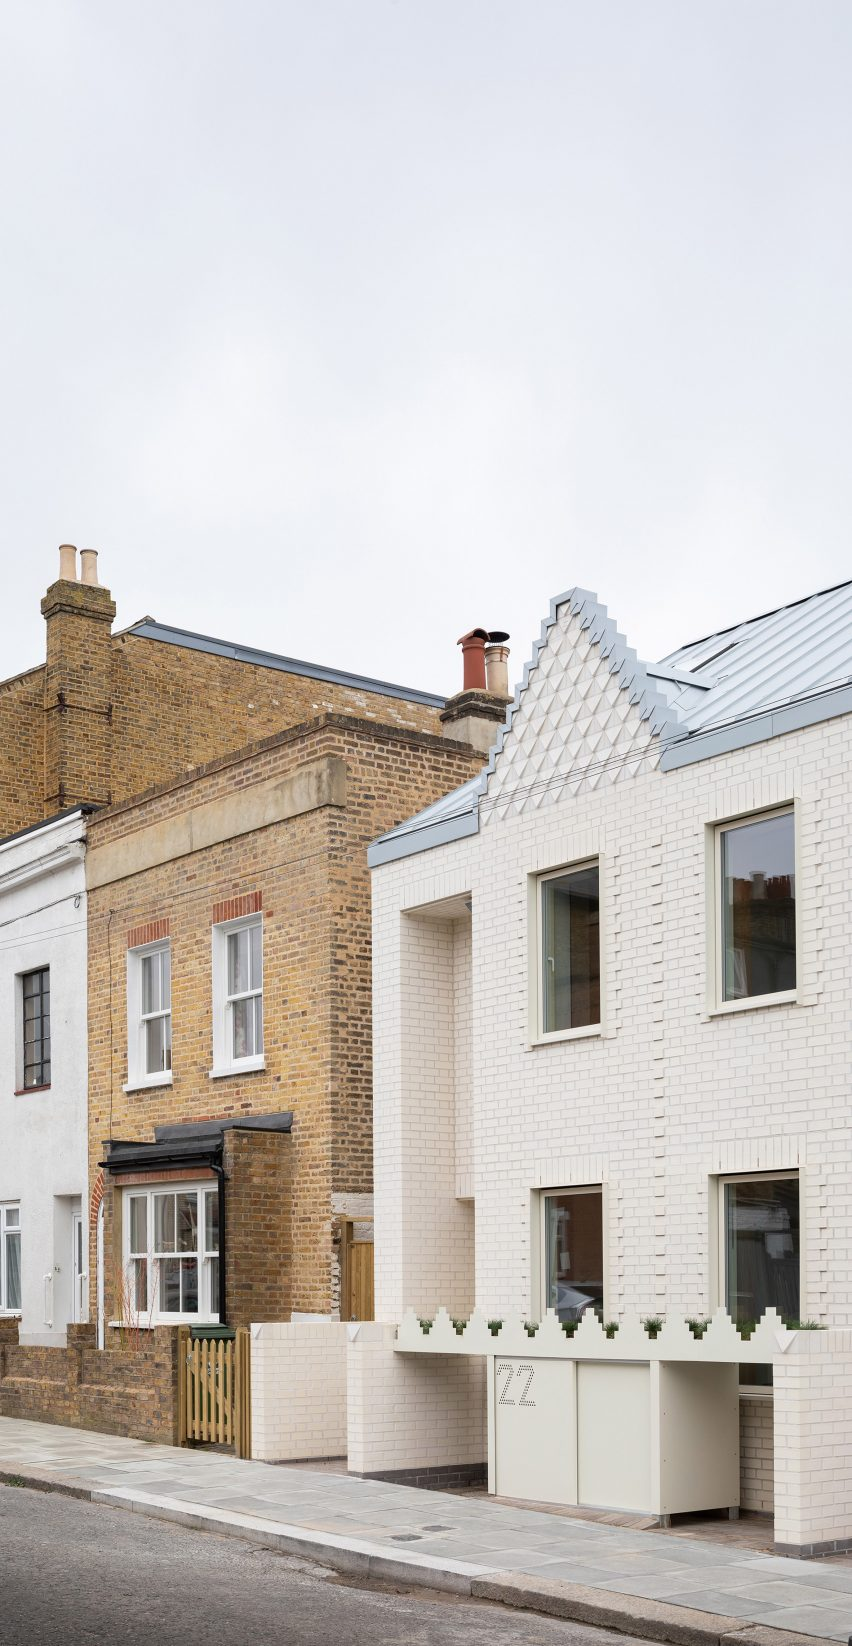 A row of terraced brick houses in London